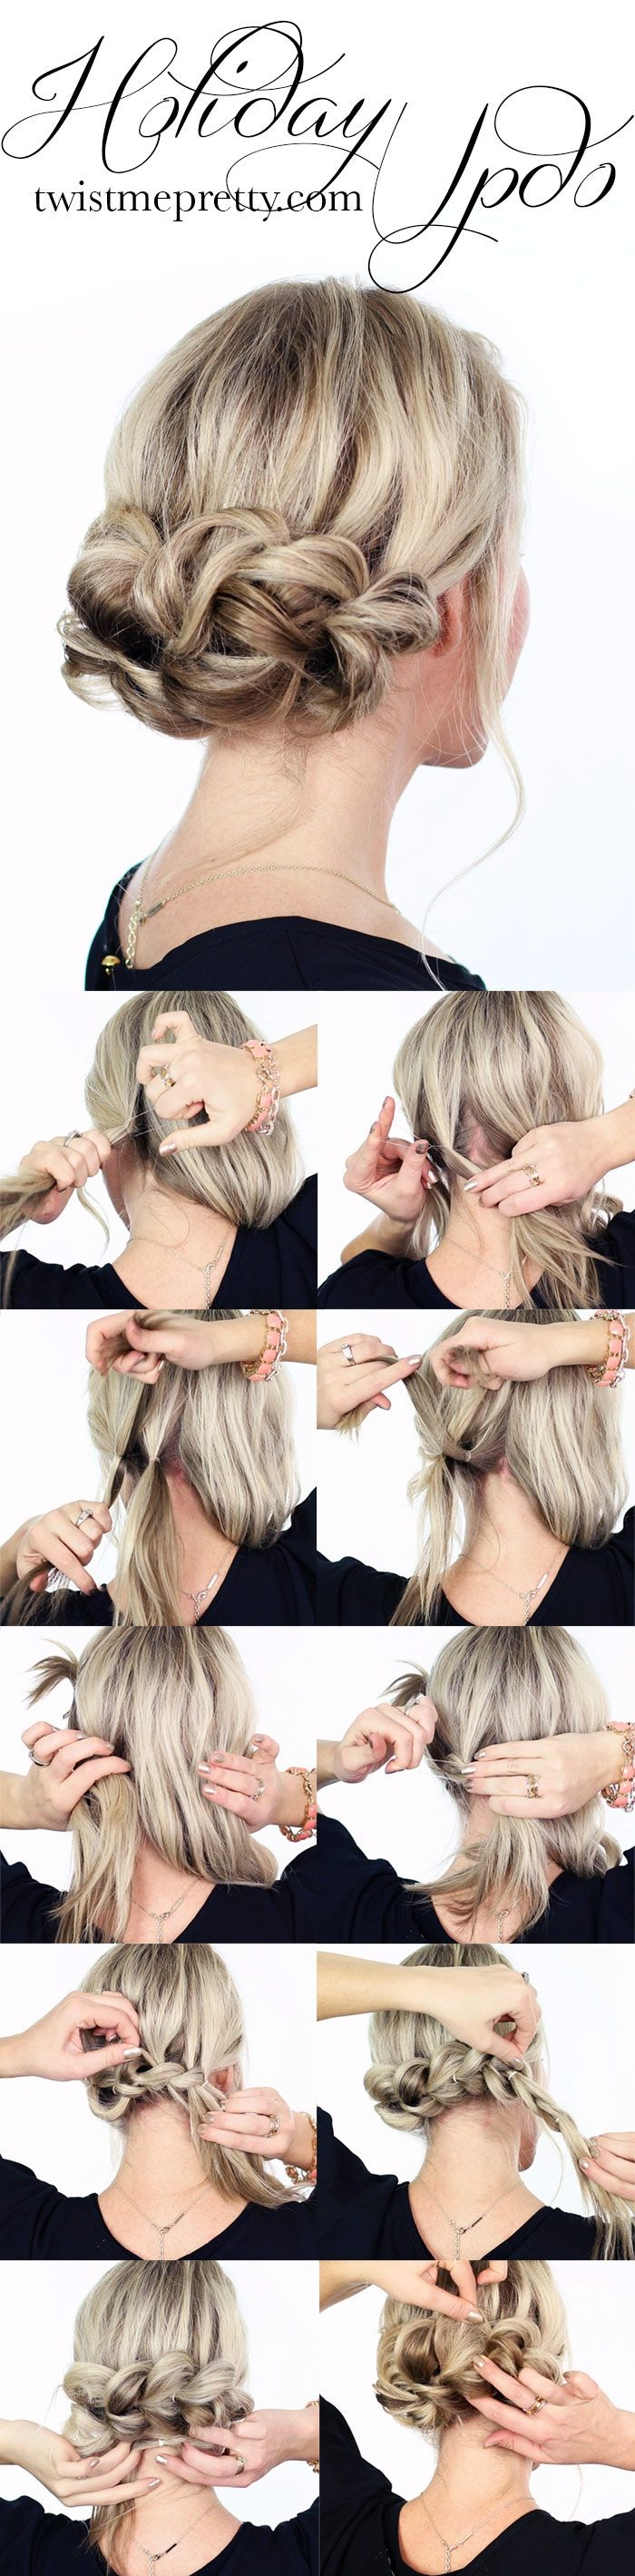 15 Beautiful Hairstyles Easy and Fast Everyday Hairdressing